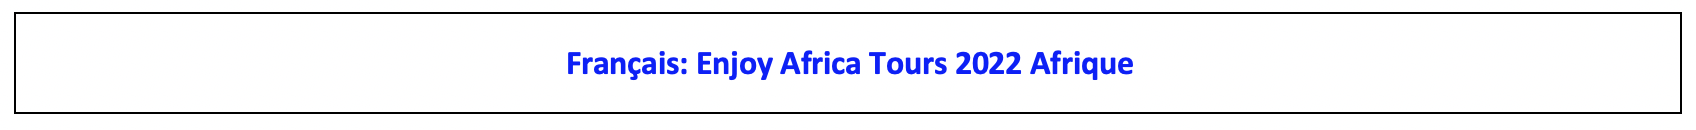 Enjoy Africa Tours French 2022